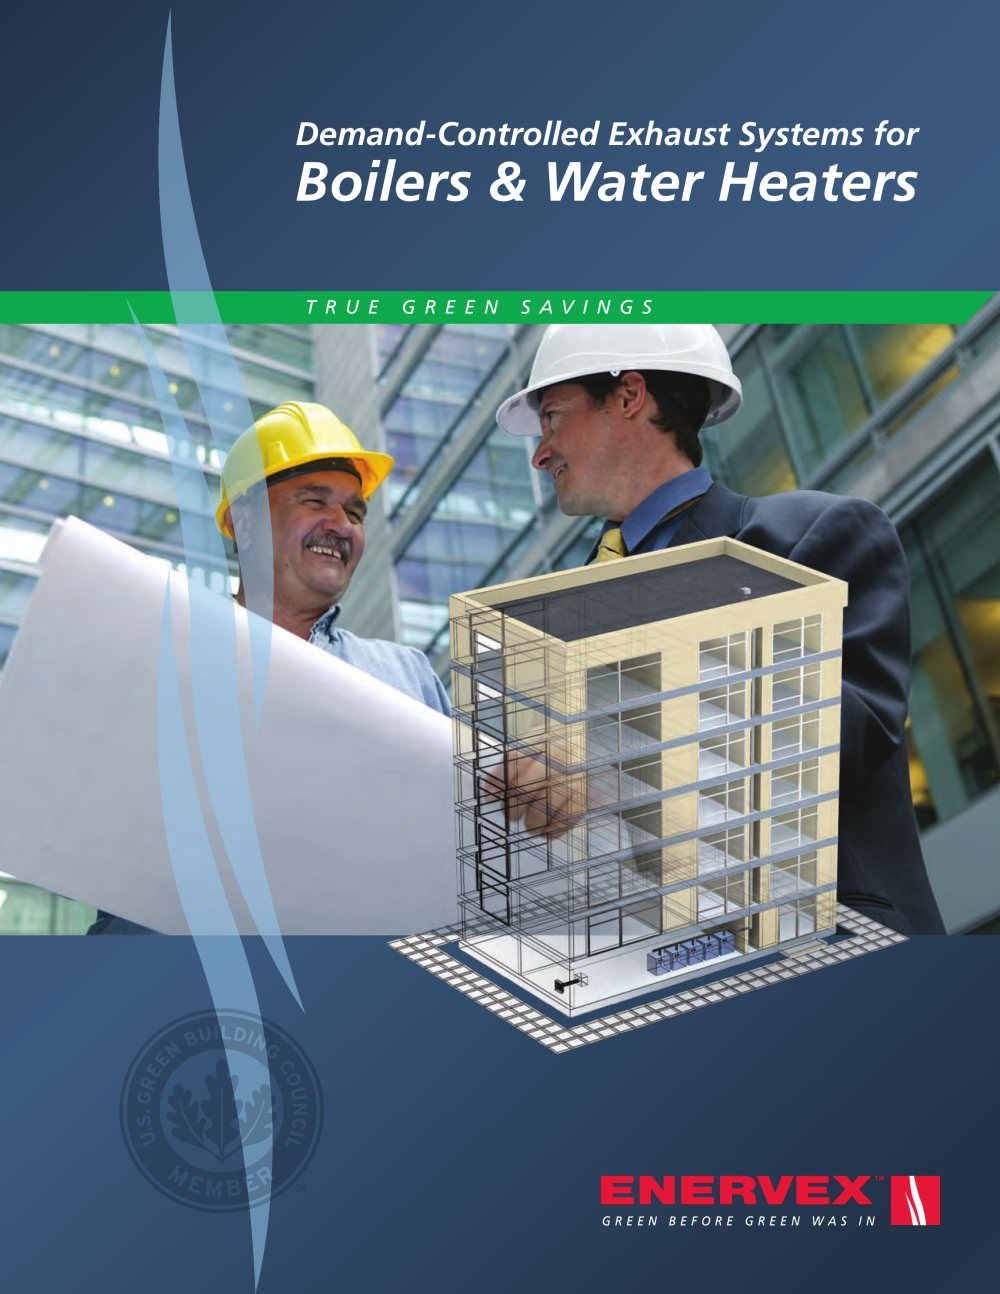 Demand-Controlled Exhaust Systems for Boiler and Water Heaters ...